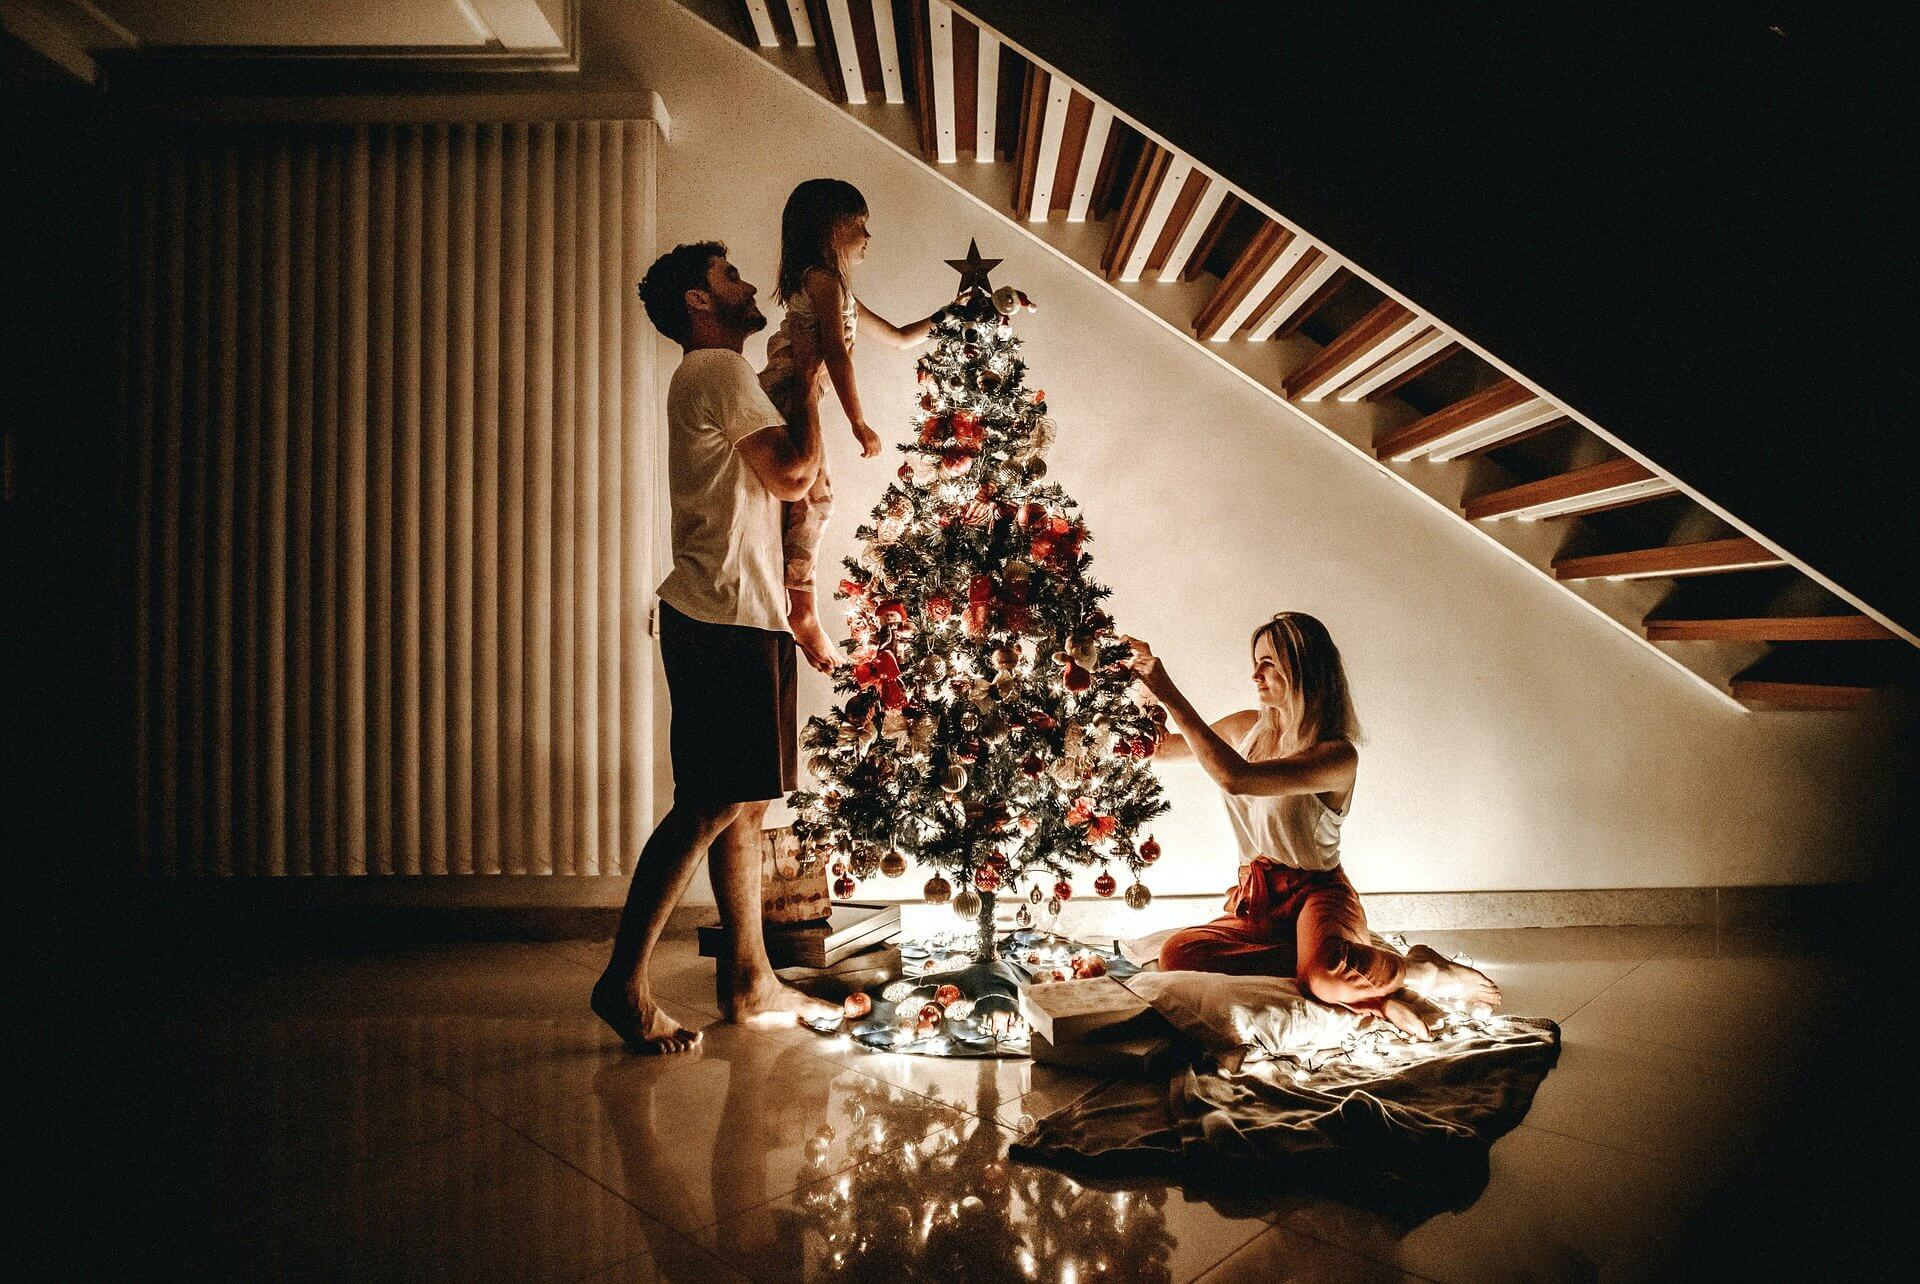 Christmas: 7 Keys To Decorate The Tree As a Family